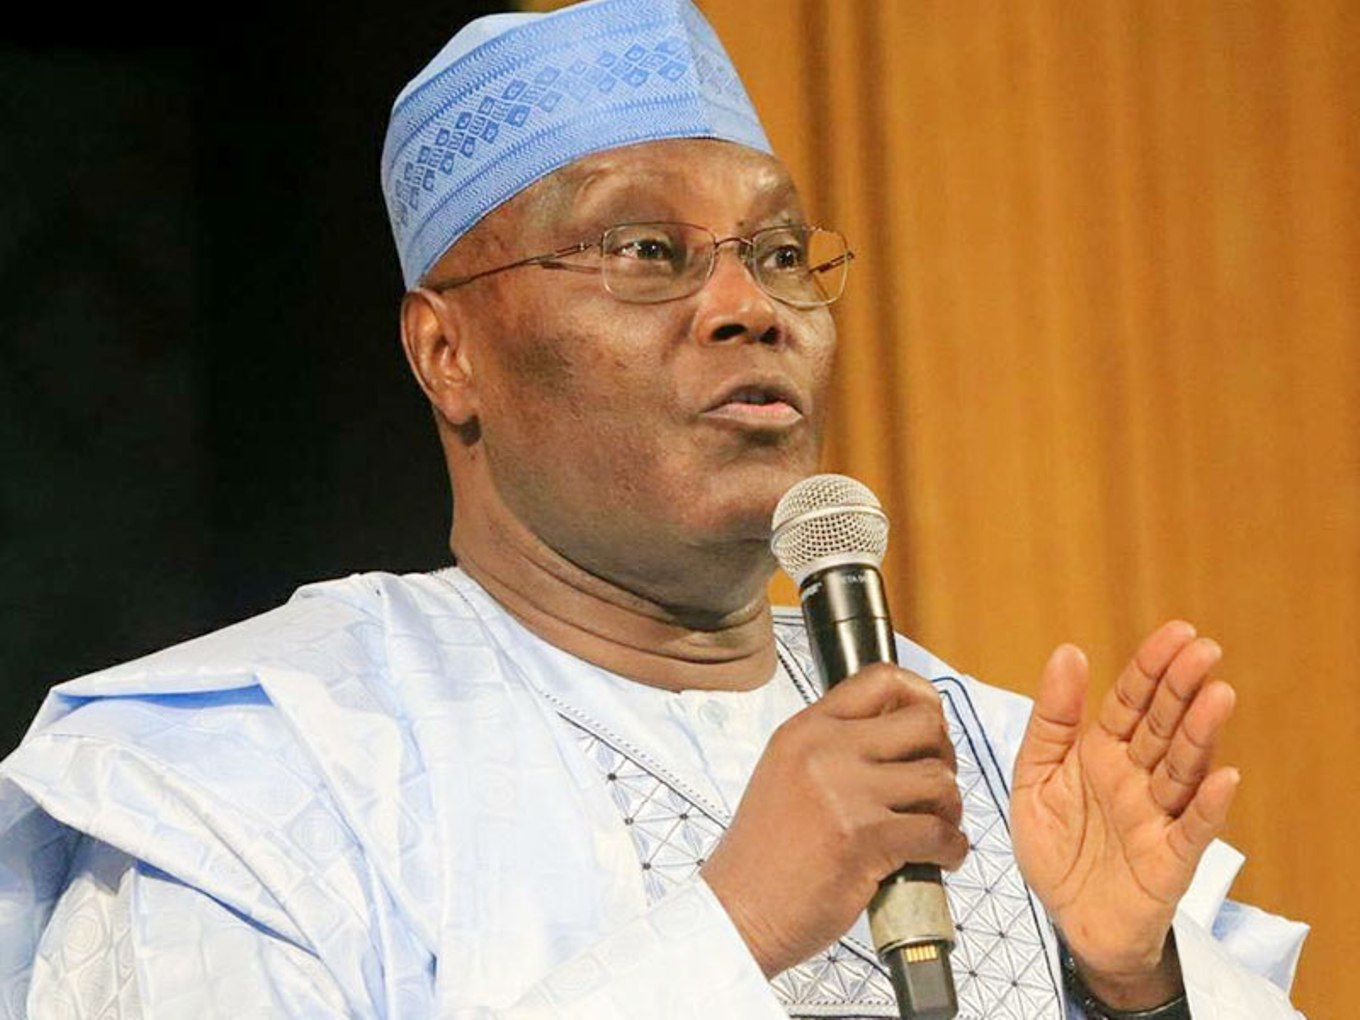 Former Vice President Atiku Abubakar has warned in strong terms that darkness awaits Nigeria if attacks on citadel of learning don't stop.